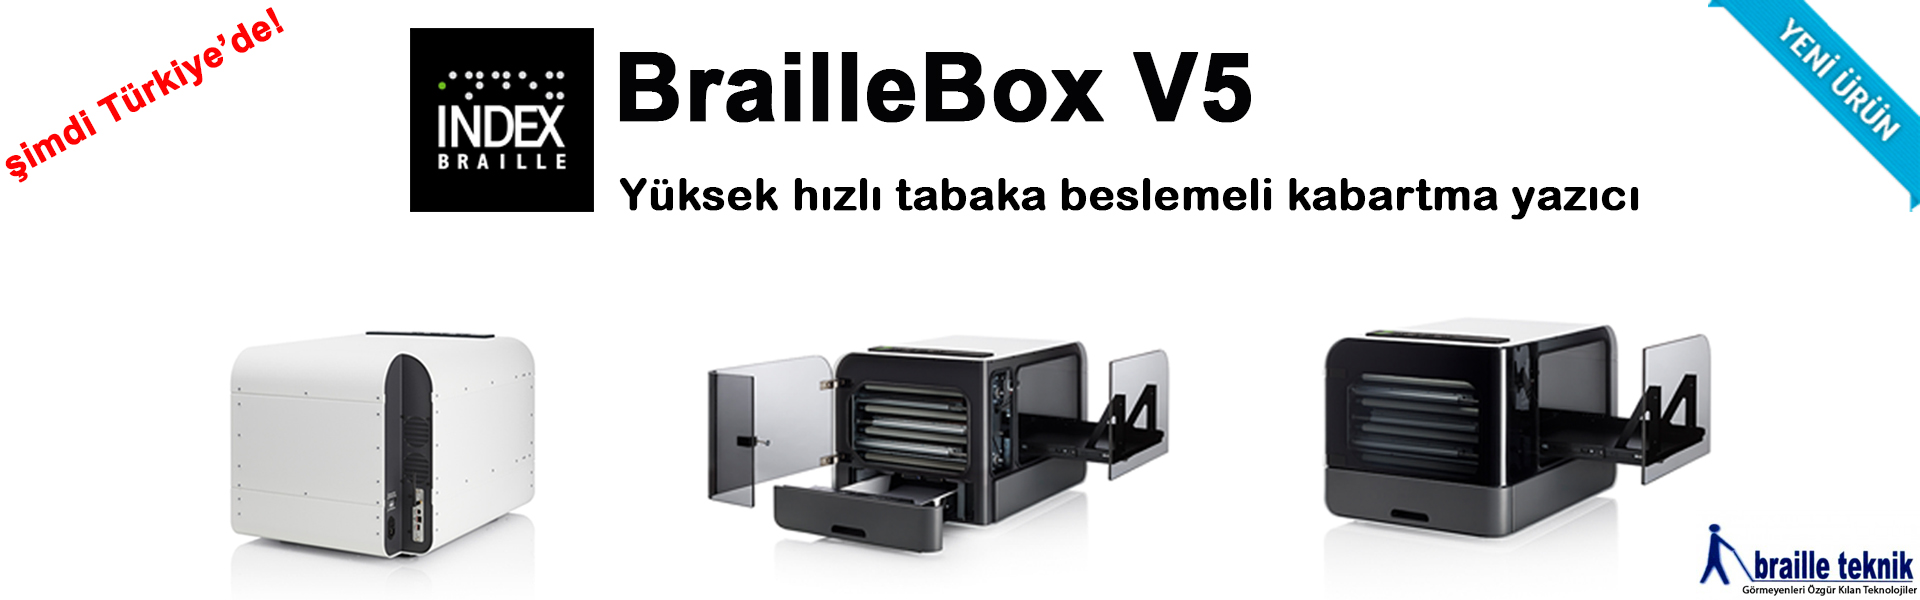 braillebox v5